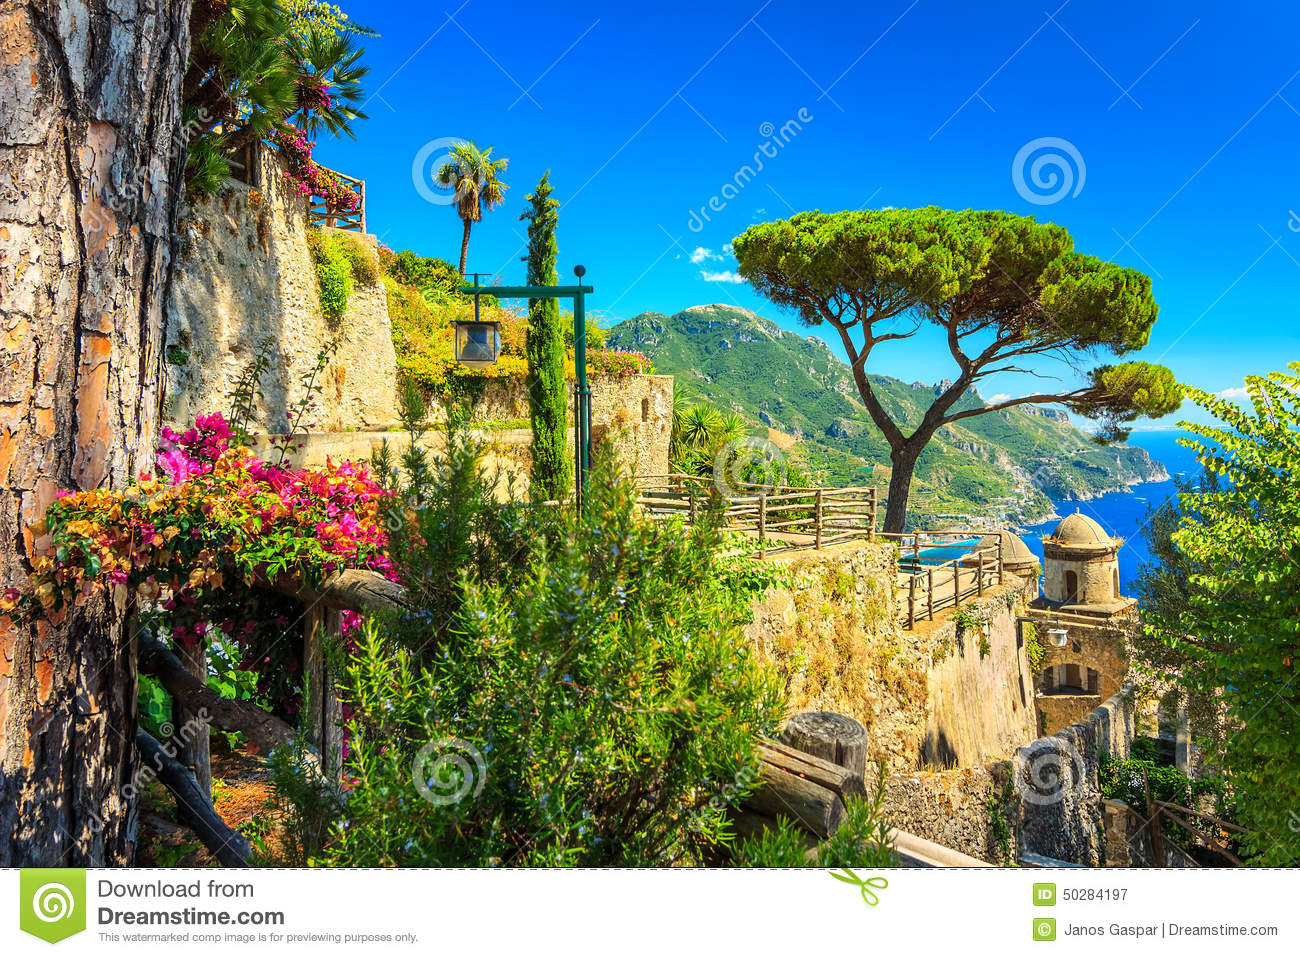 ornamental verschob garten rufolo garten ravello amalfi k ste italien europa stockbild. Black Bedroom Furniture Sets. Home Design Ideas